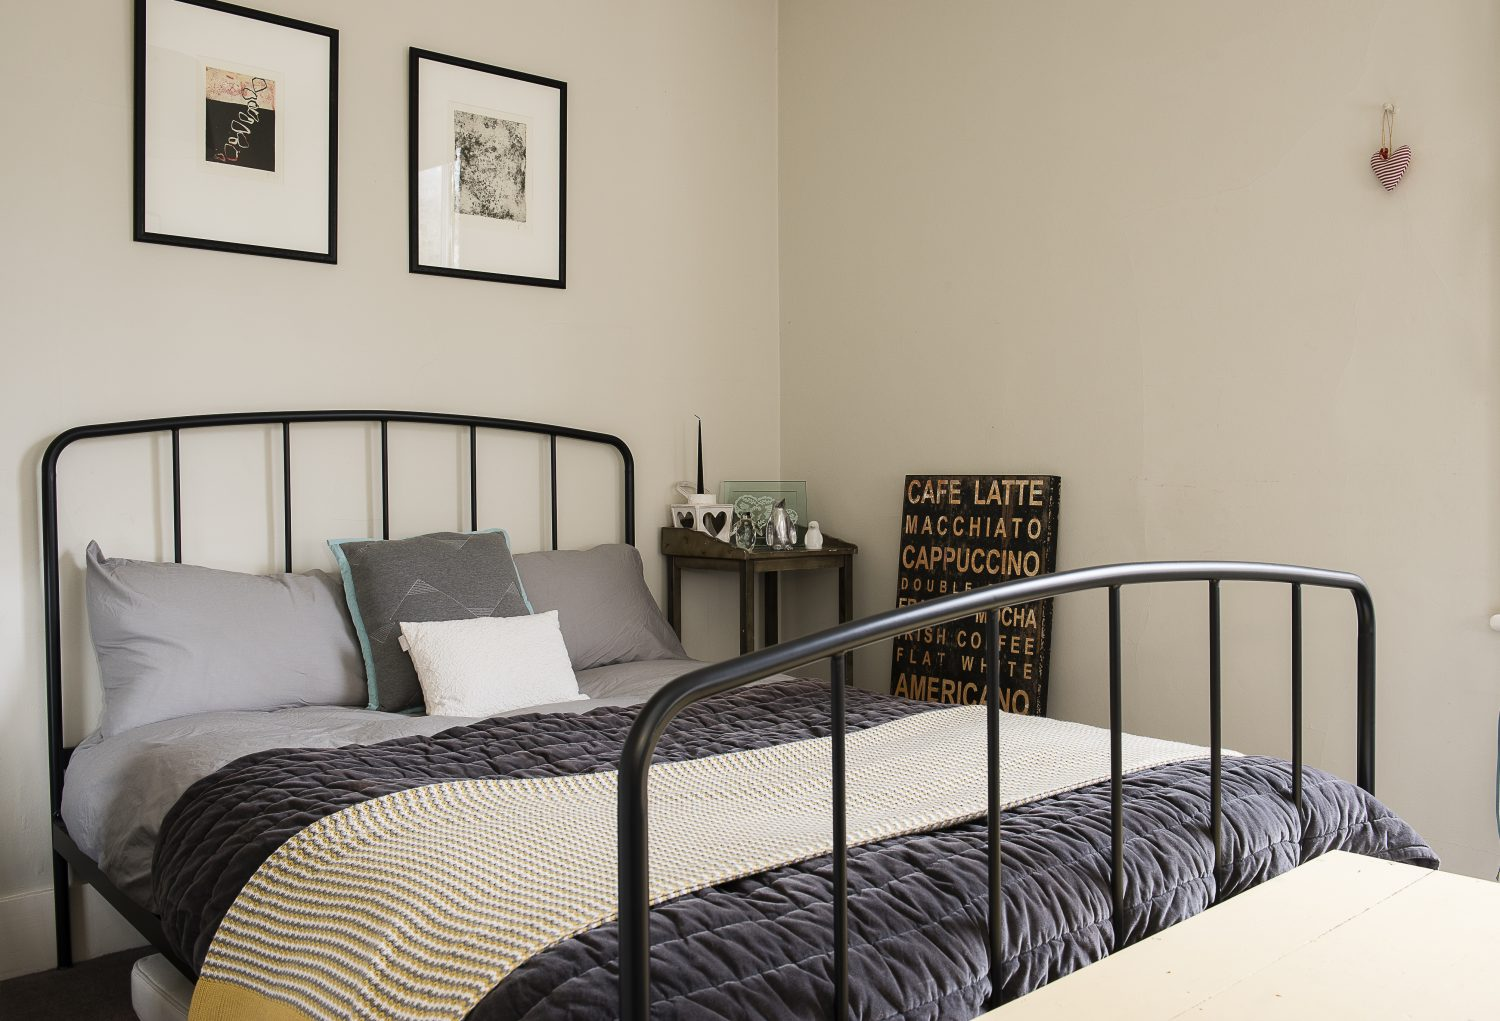 The guest bedroom features a metal bed frame from Made.com